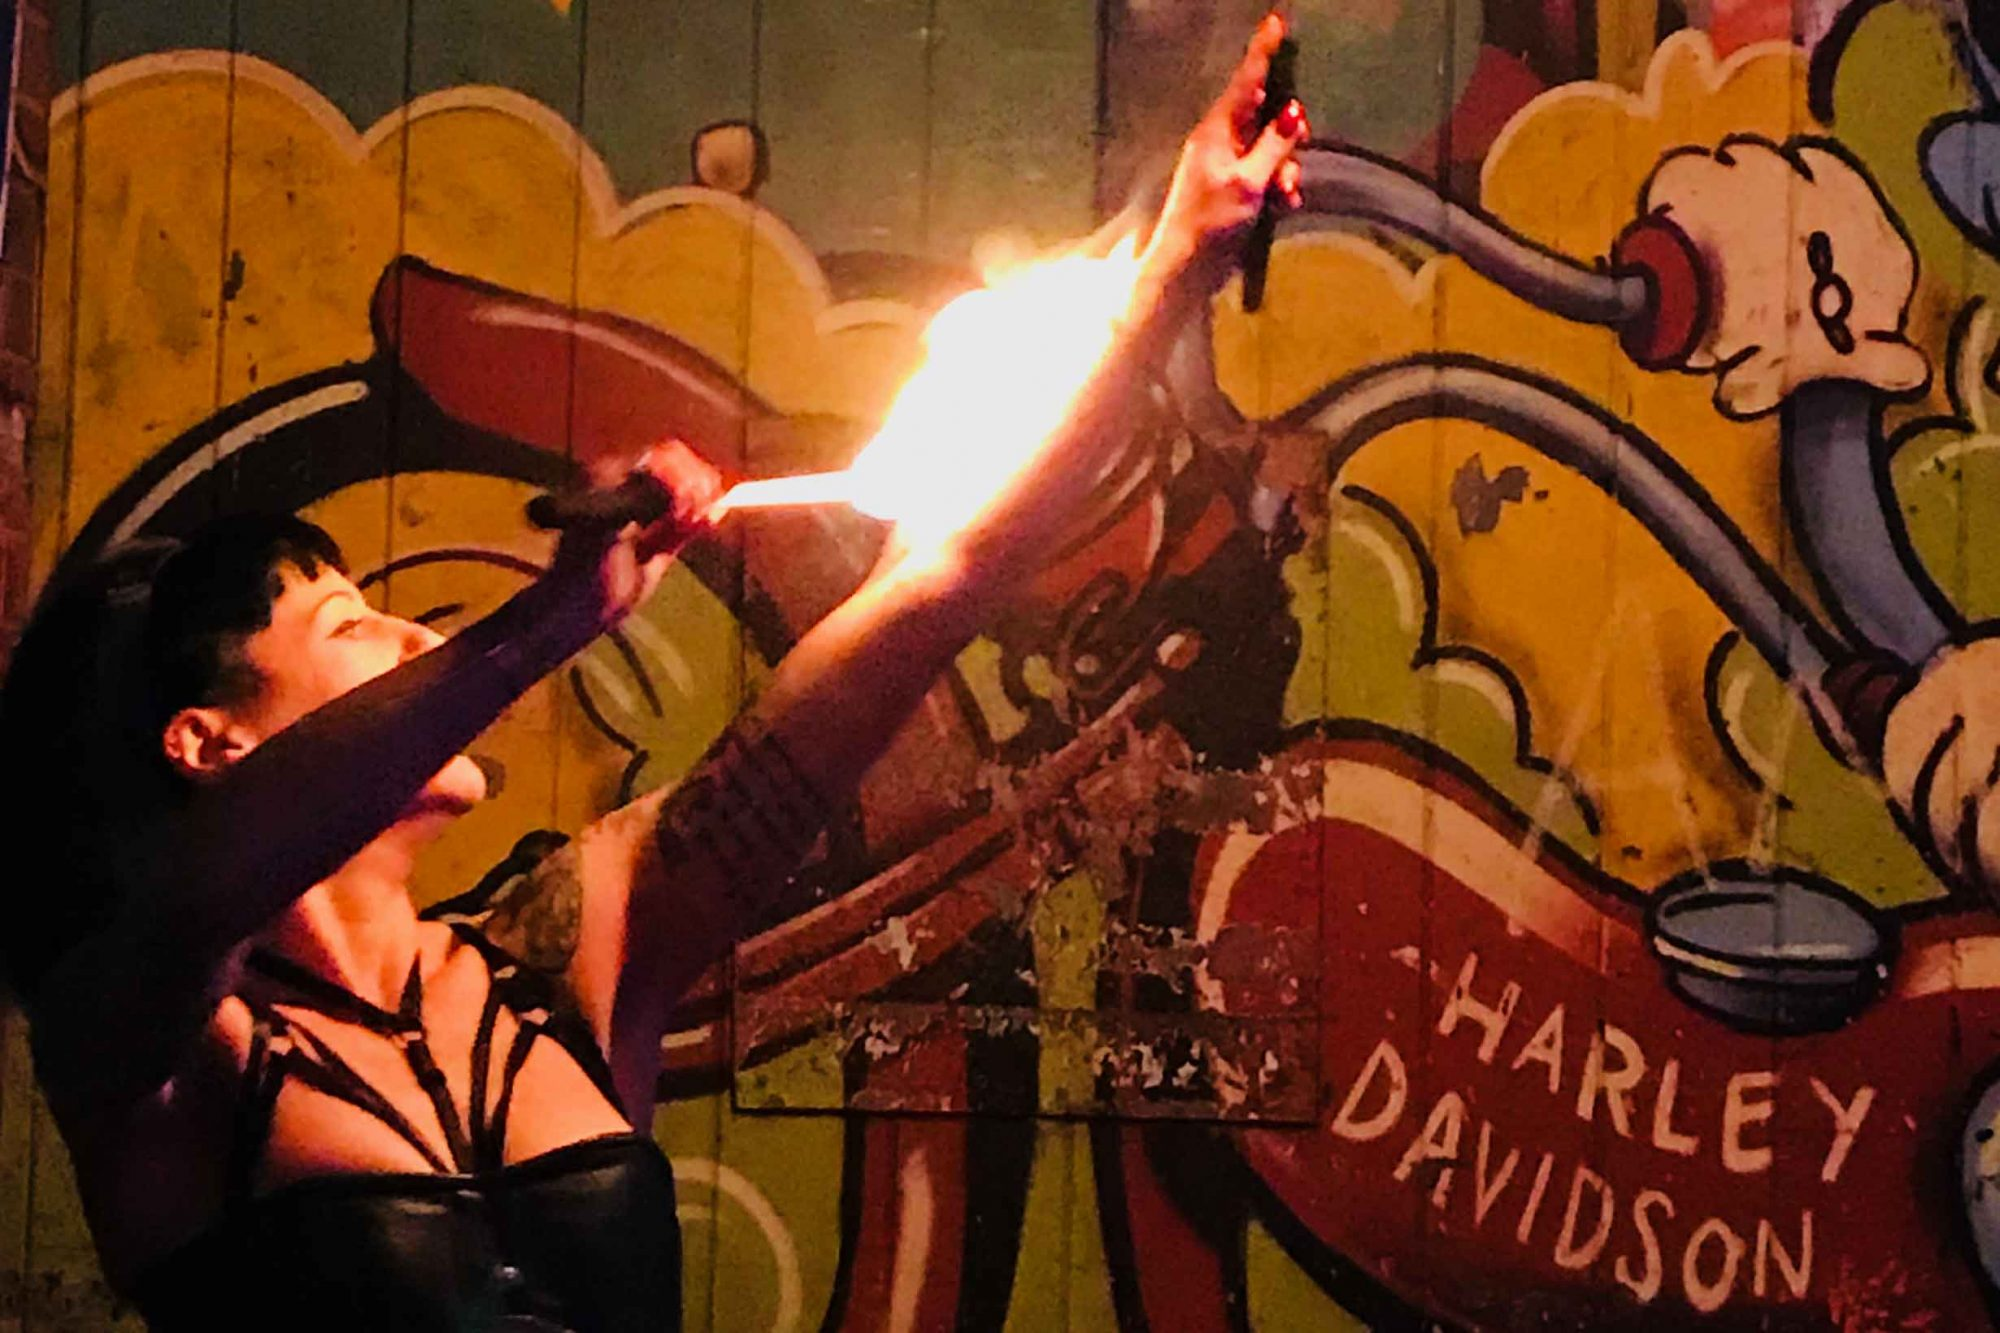 Fire-eater in front of wall graffiti